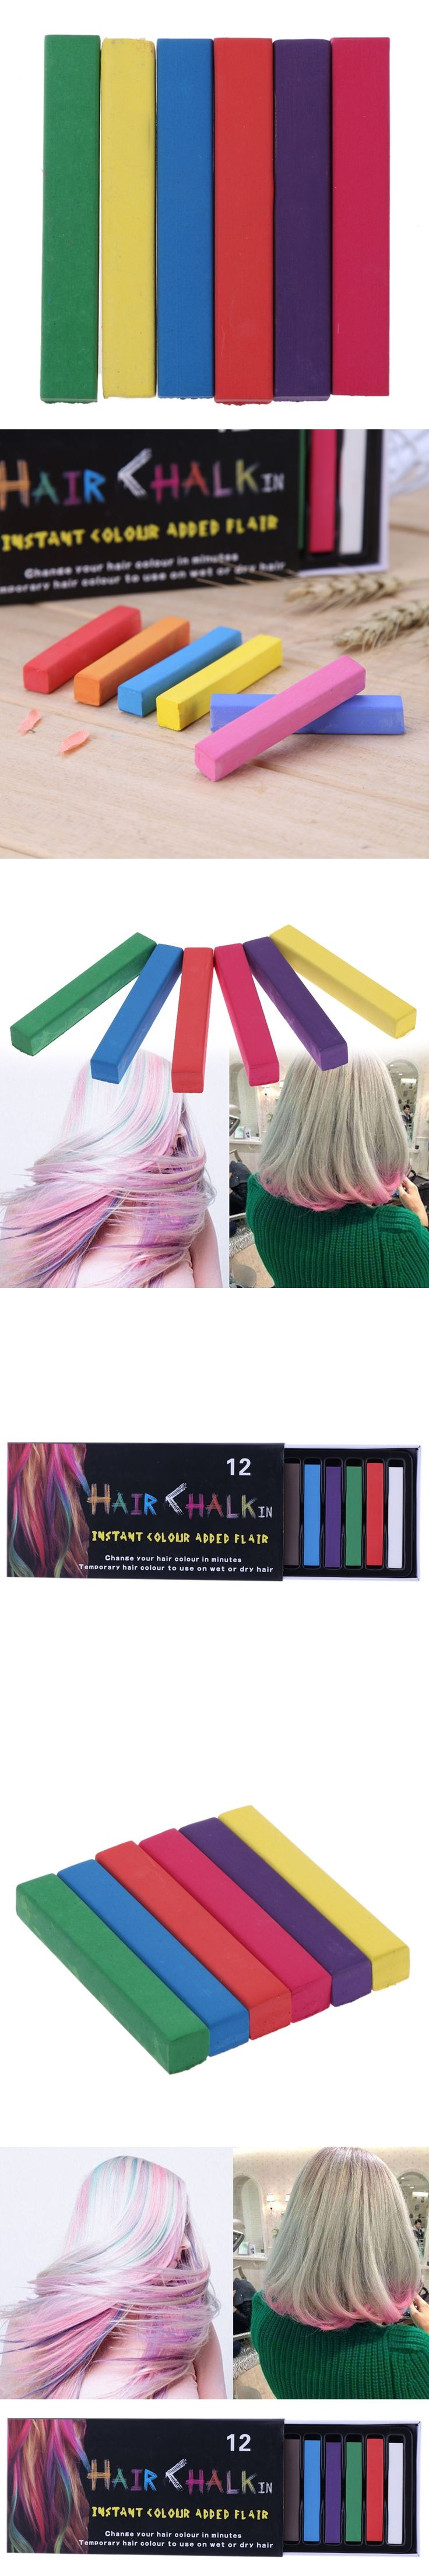 Beauty Convenient Temporary Super Hair Dye Colorful Chalk Hair Color Alcohol-Free chalks For The Hair Giz Pastel